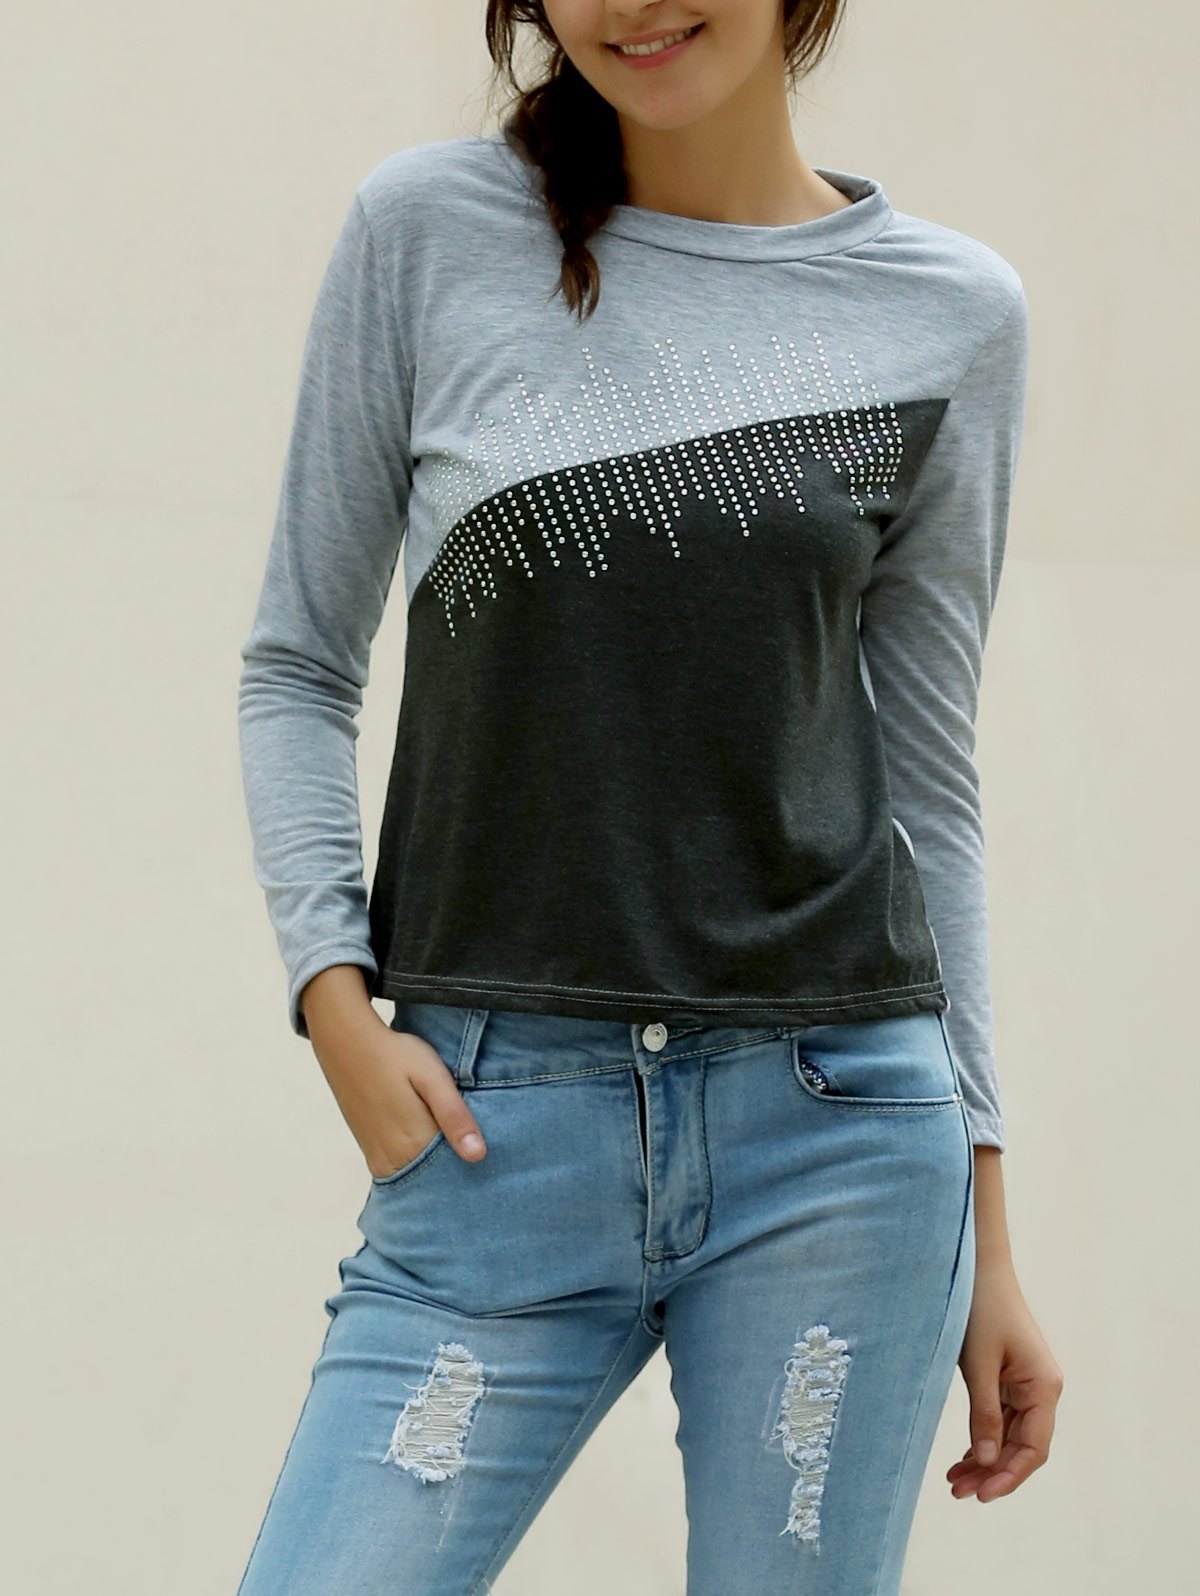 Discount Casual Jewel Neck Color Splicing Diamonds T-Shirt For Women